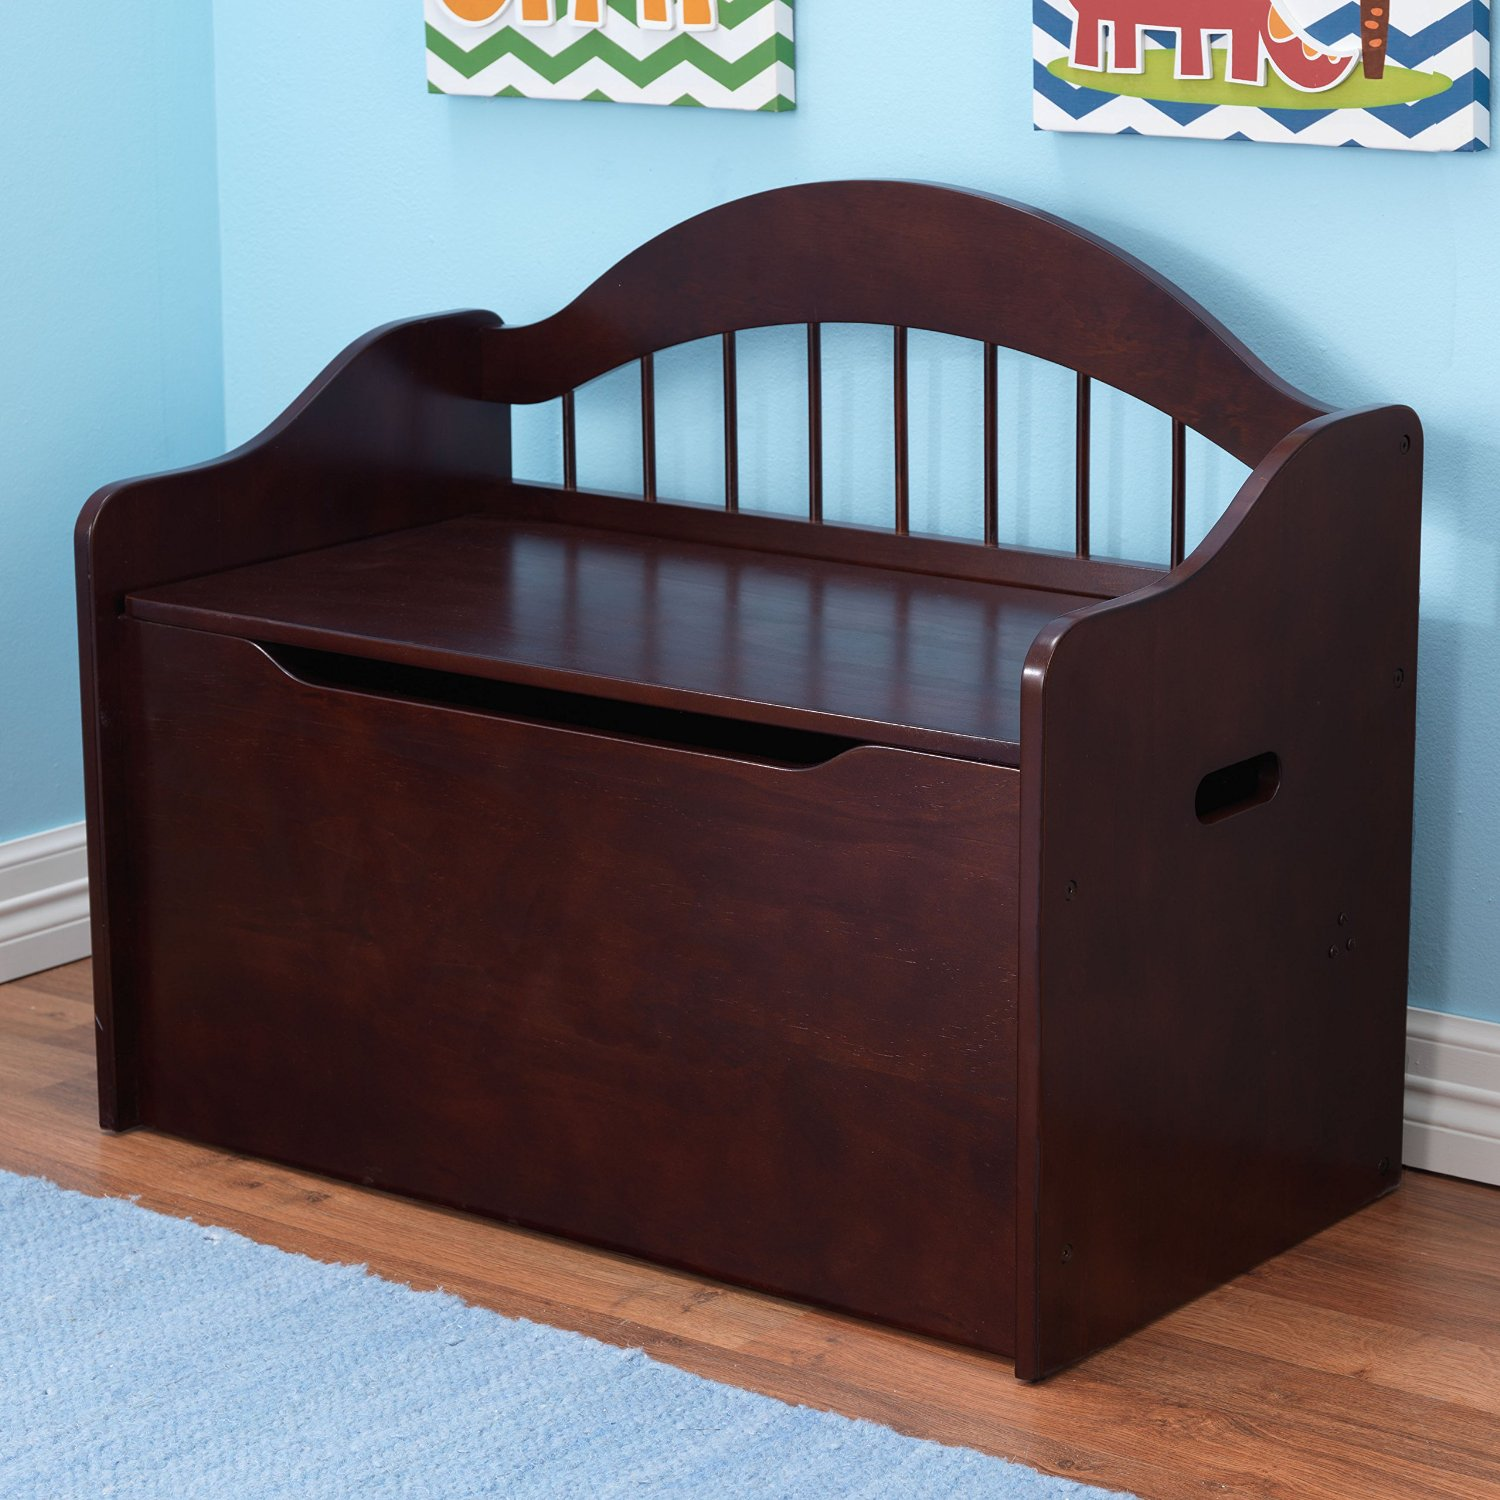 how to make a toy box - 13 toy box woodworking plans